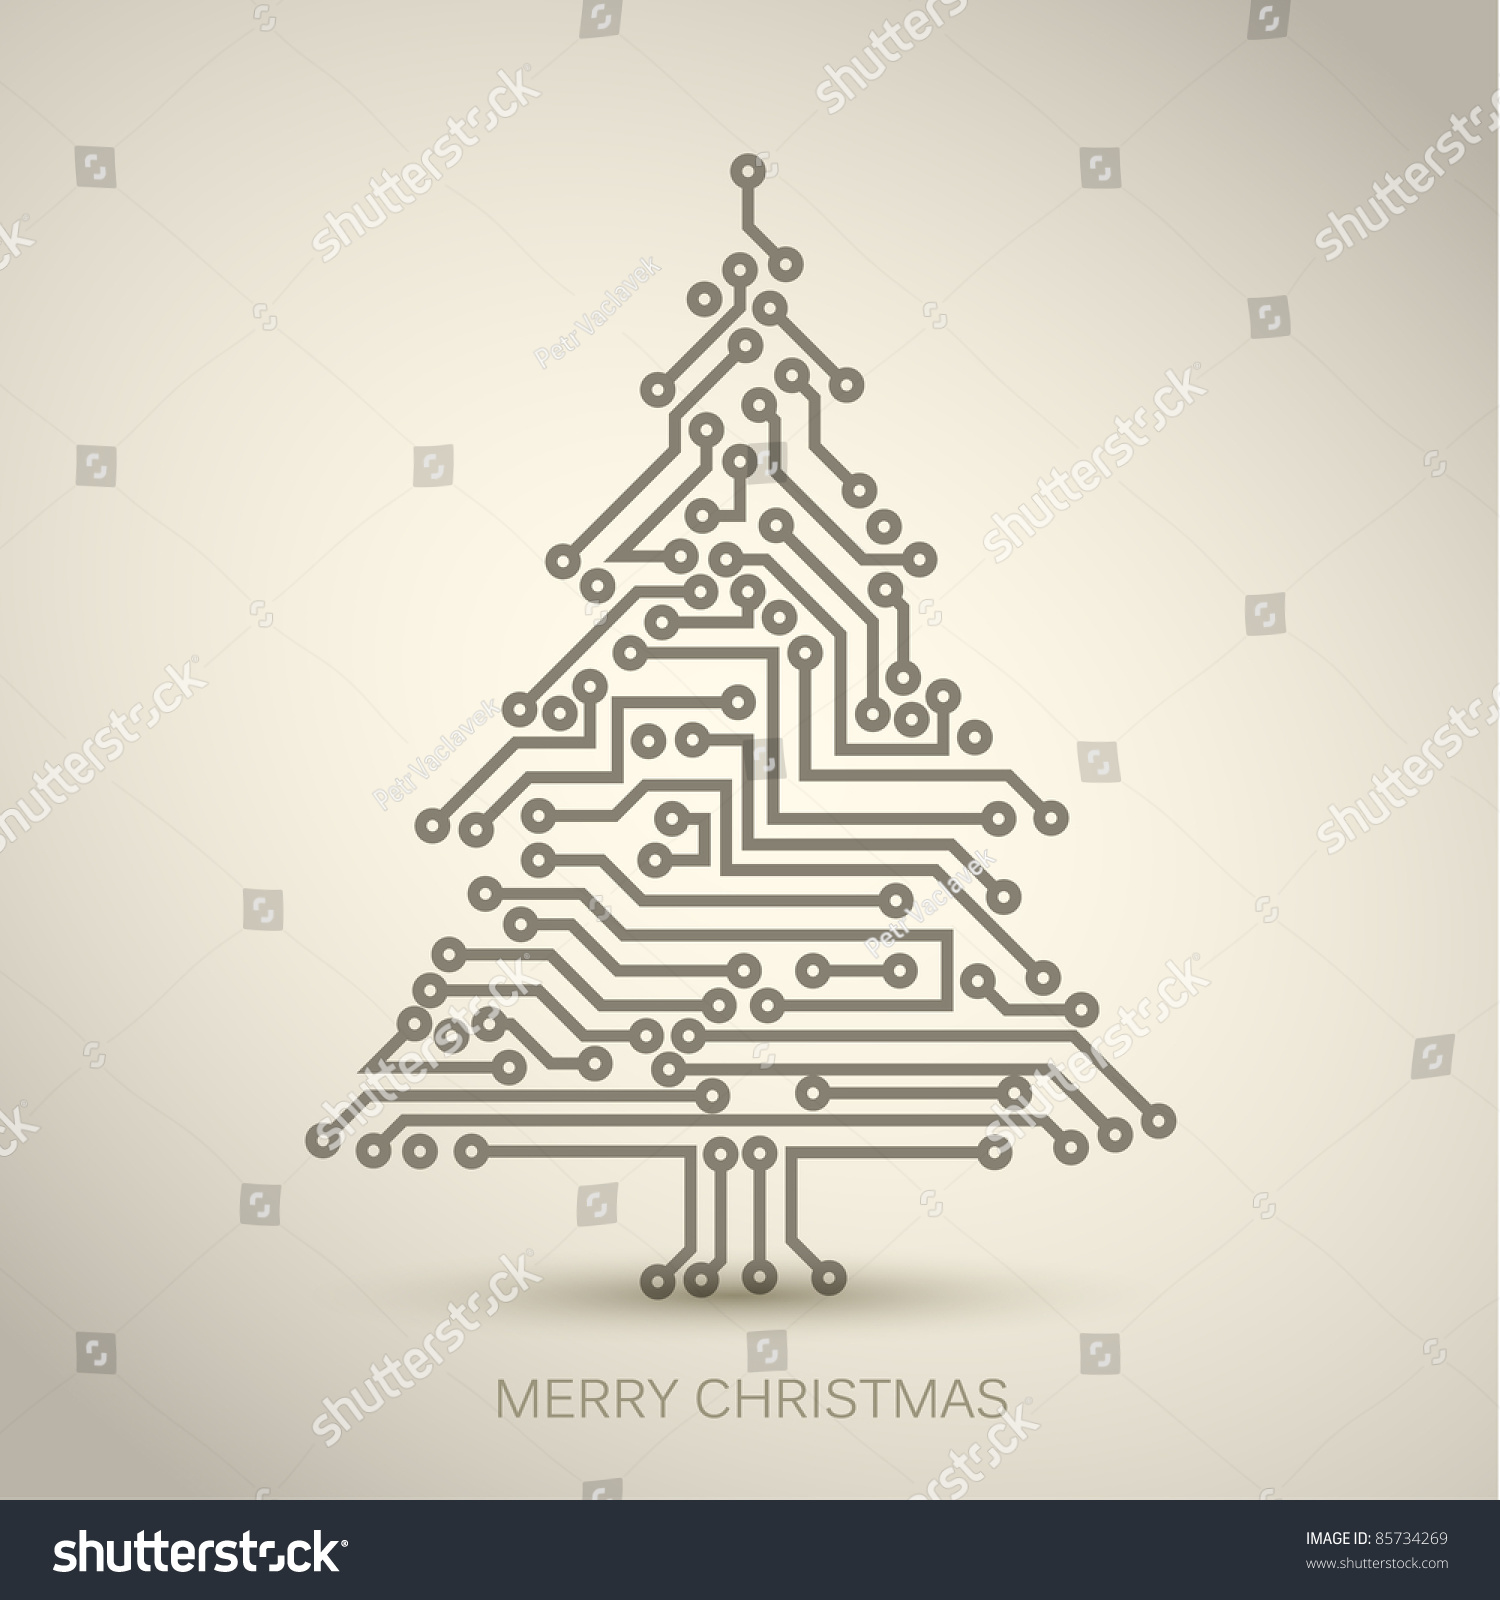 how to draw christmas tree digital